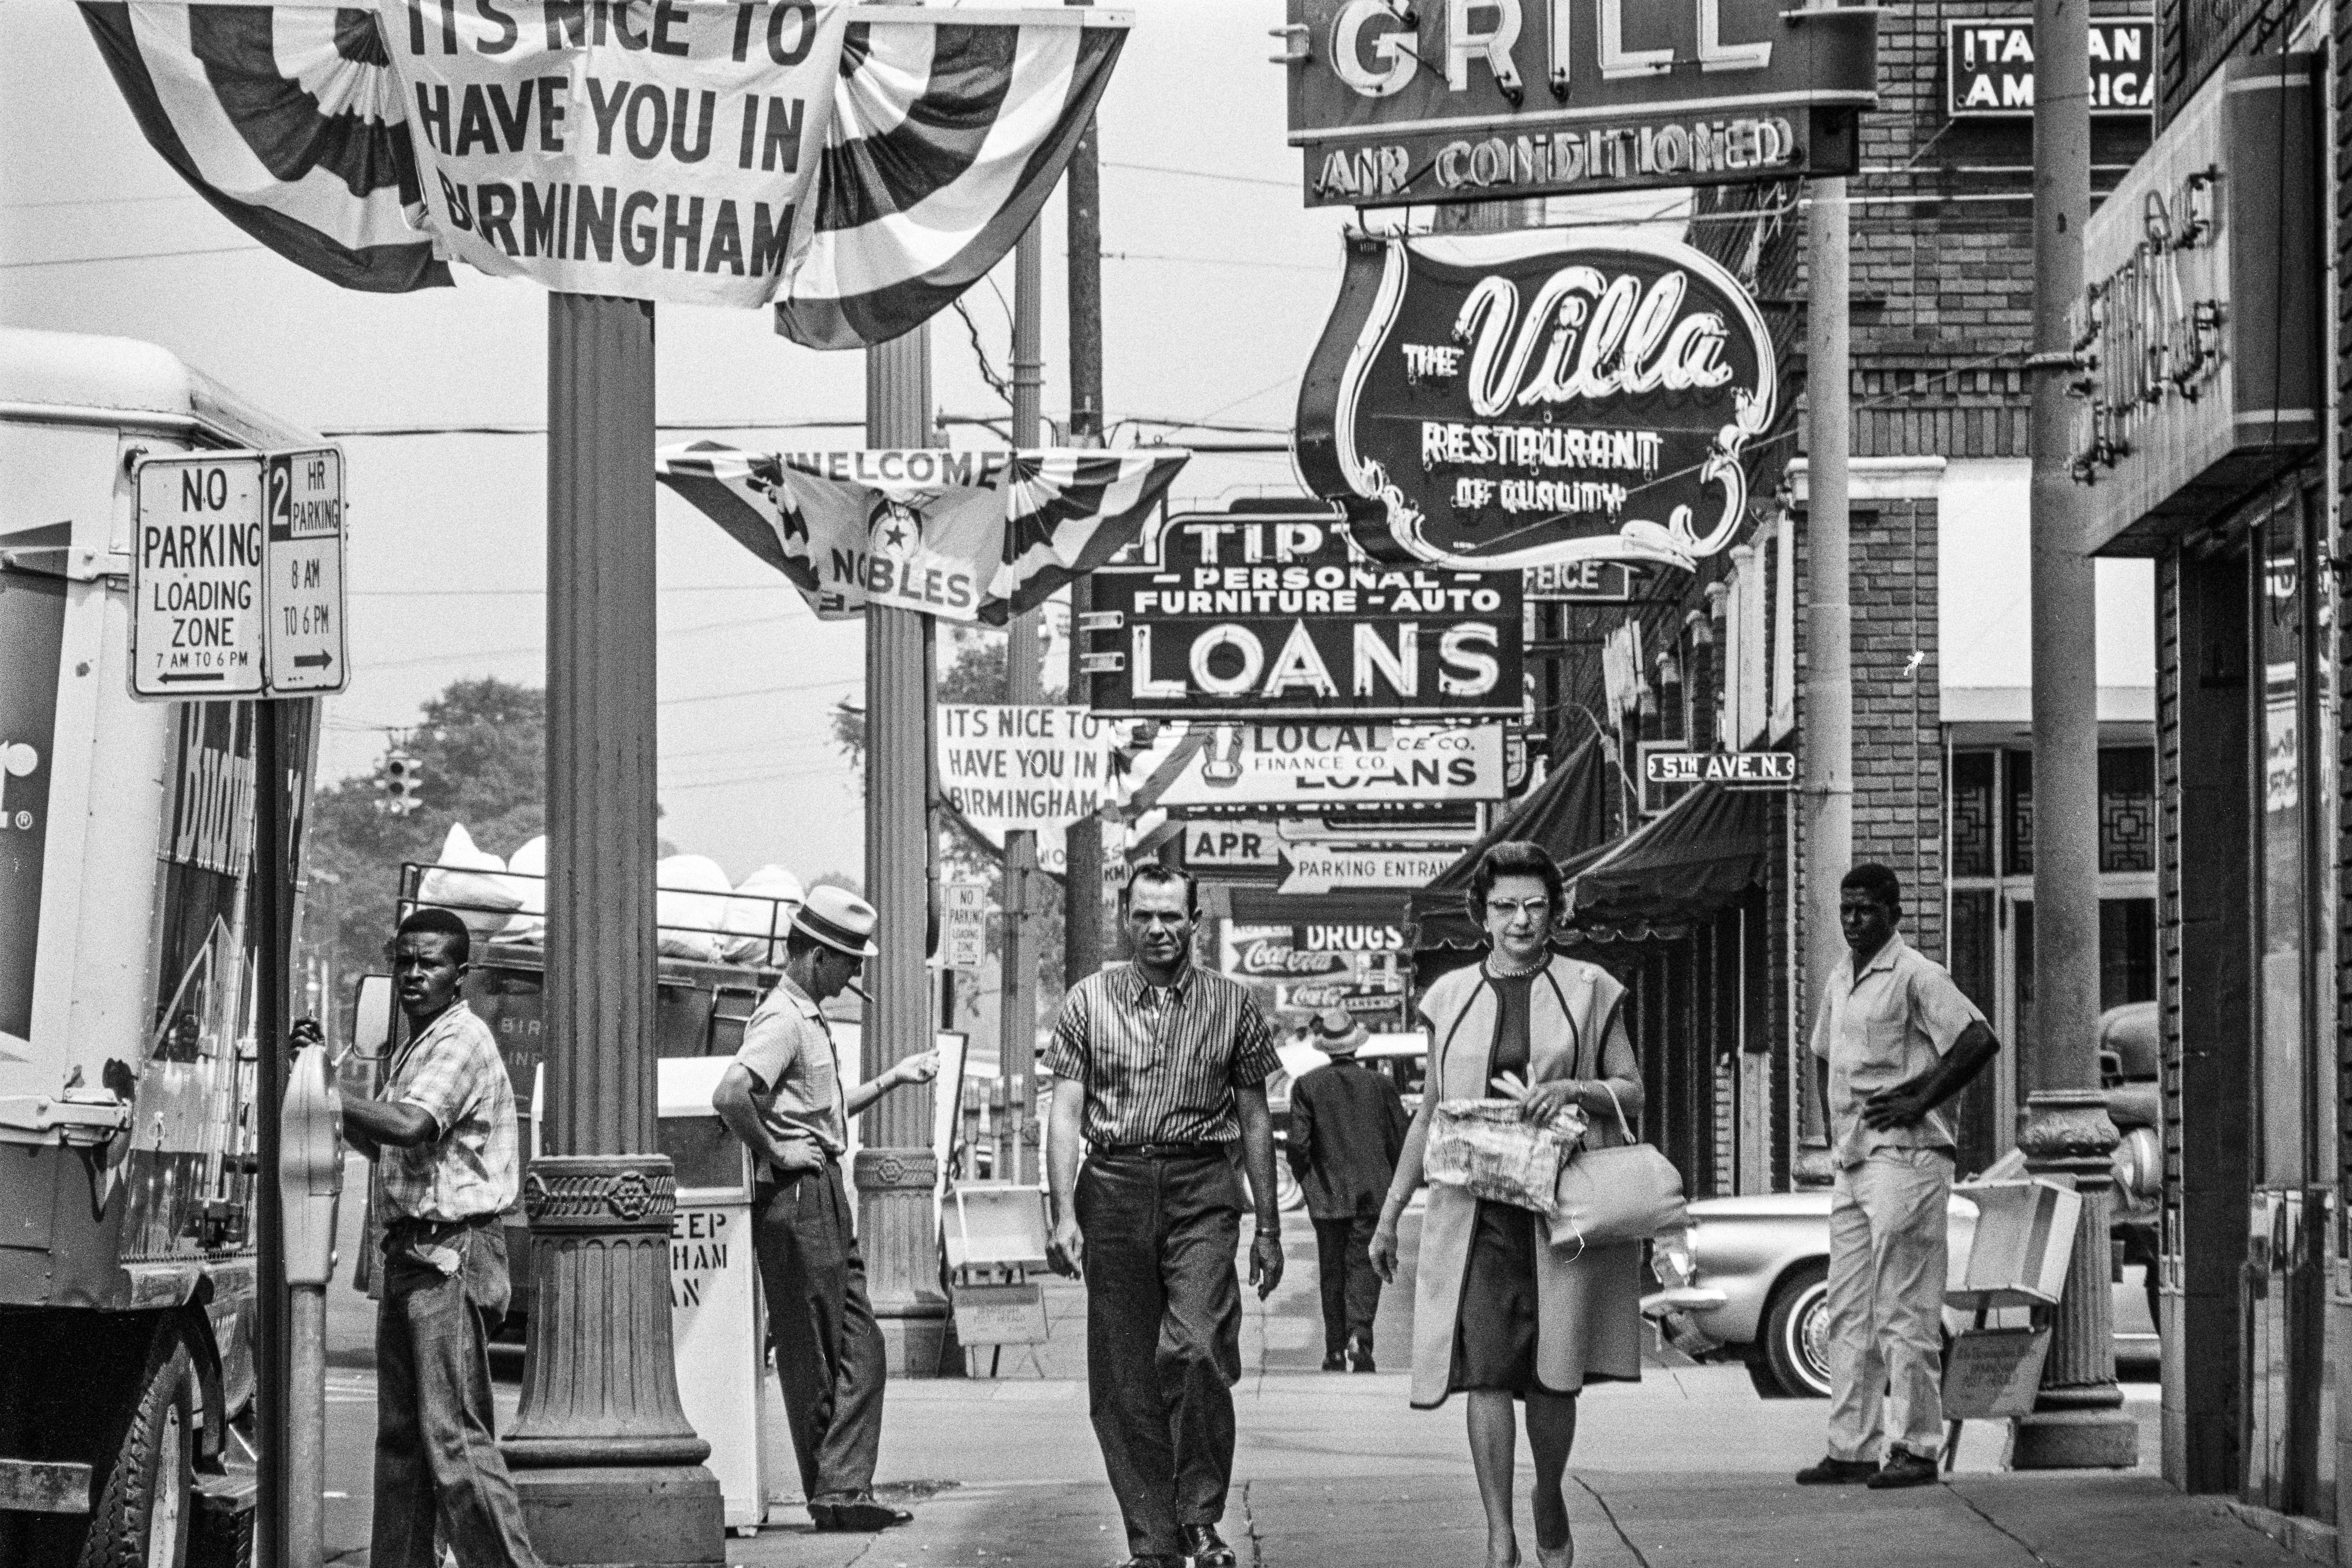 Unseen Photographs Of Civil Rights Conflict In Birmingham